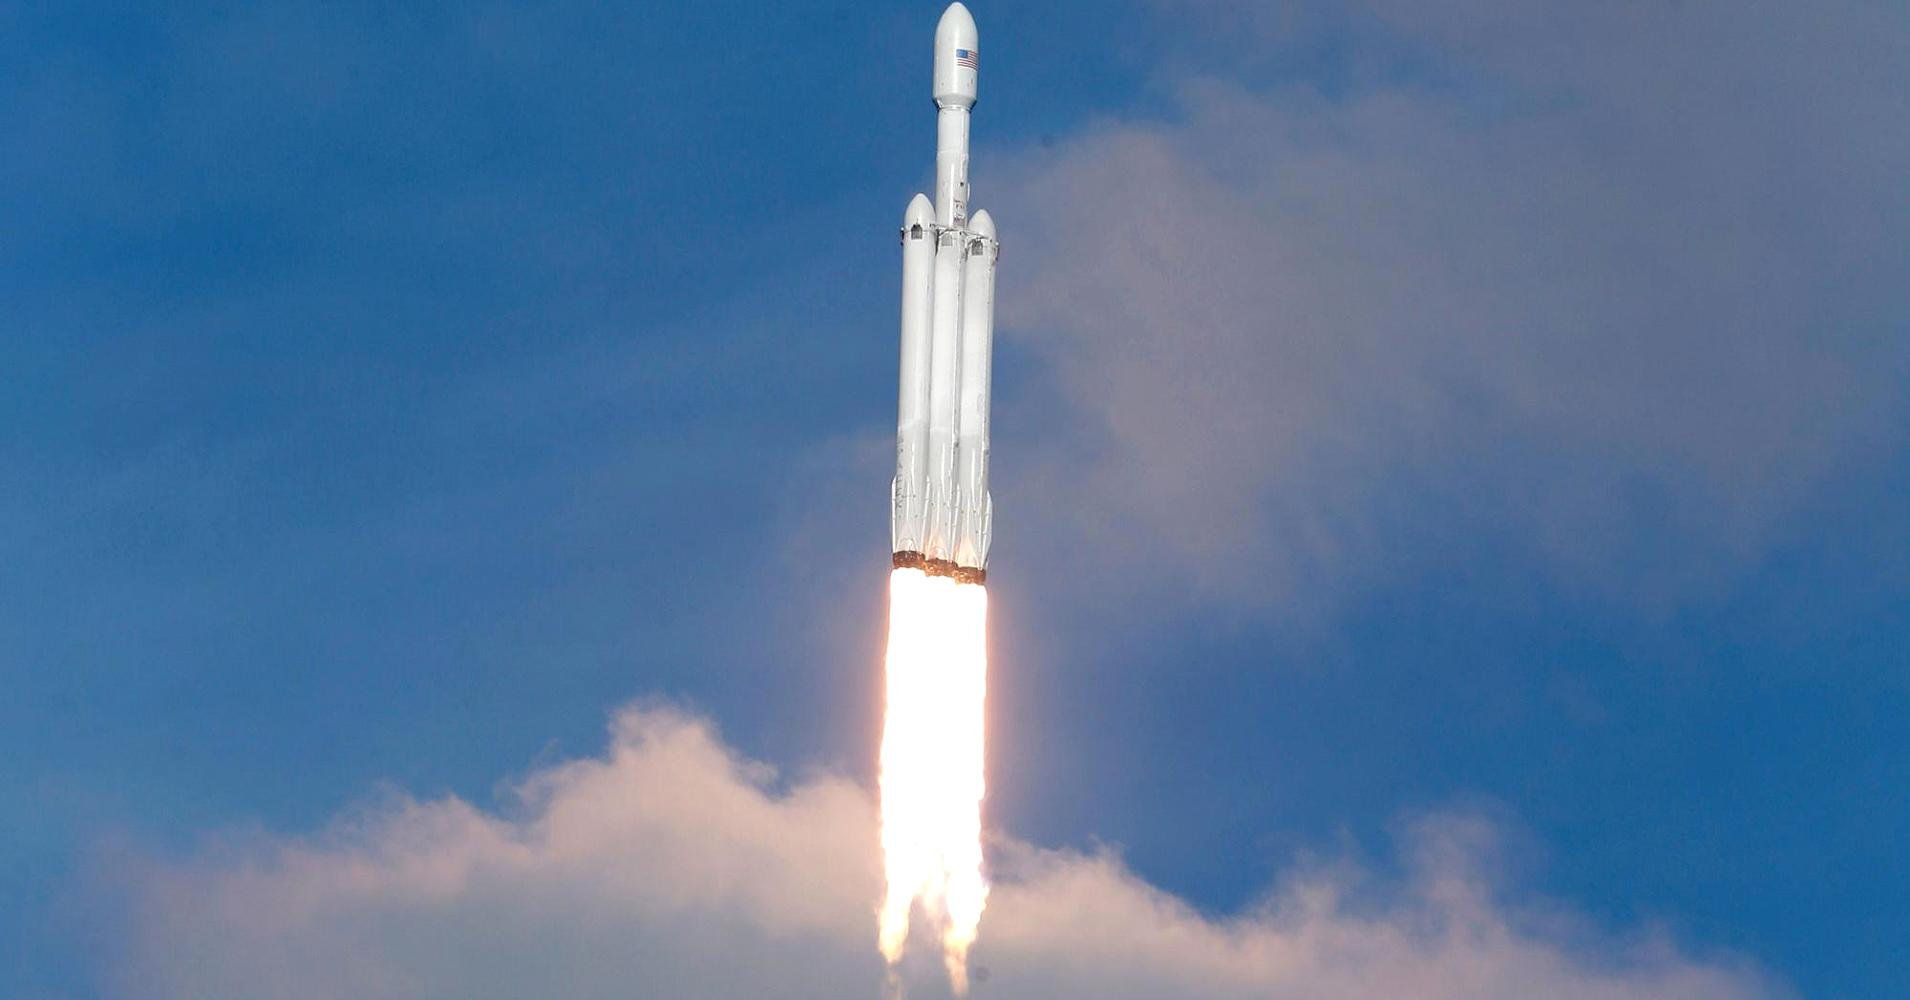 Elon Musk wants 'a new space race,' says new SpaceX rocket ...